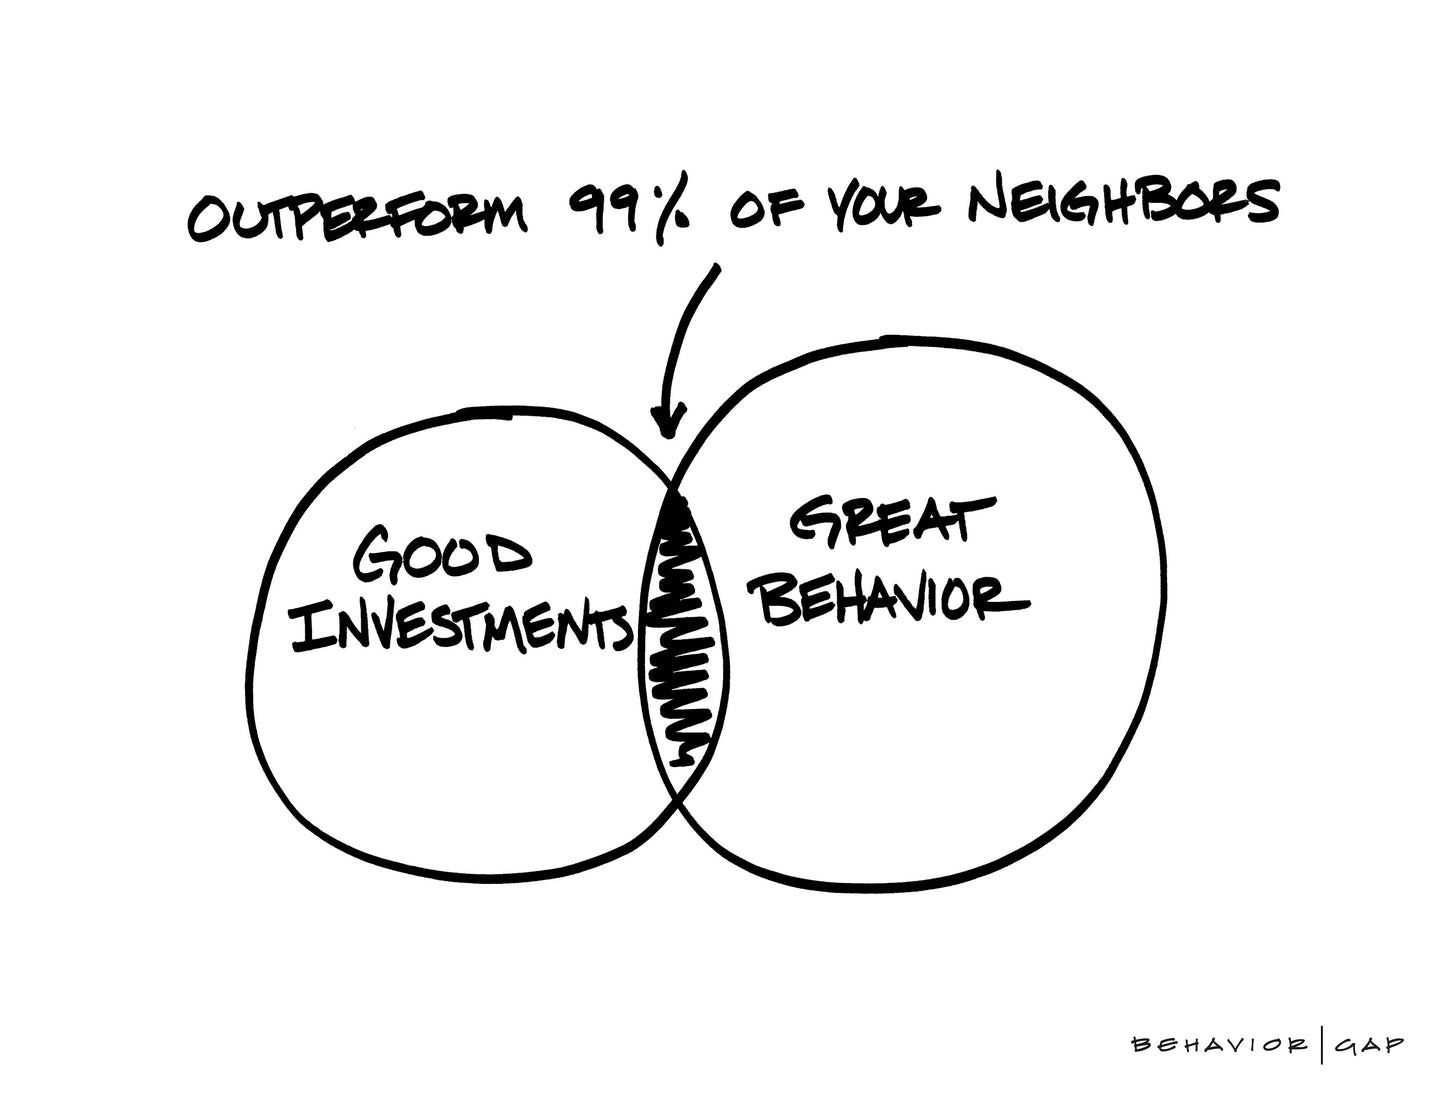 Outperform 99% of Your Neighbors